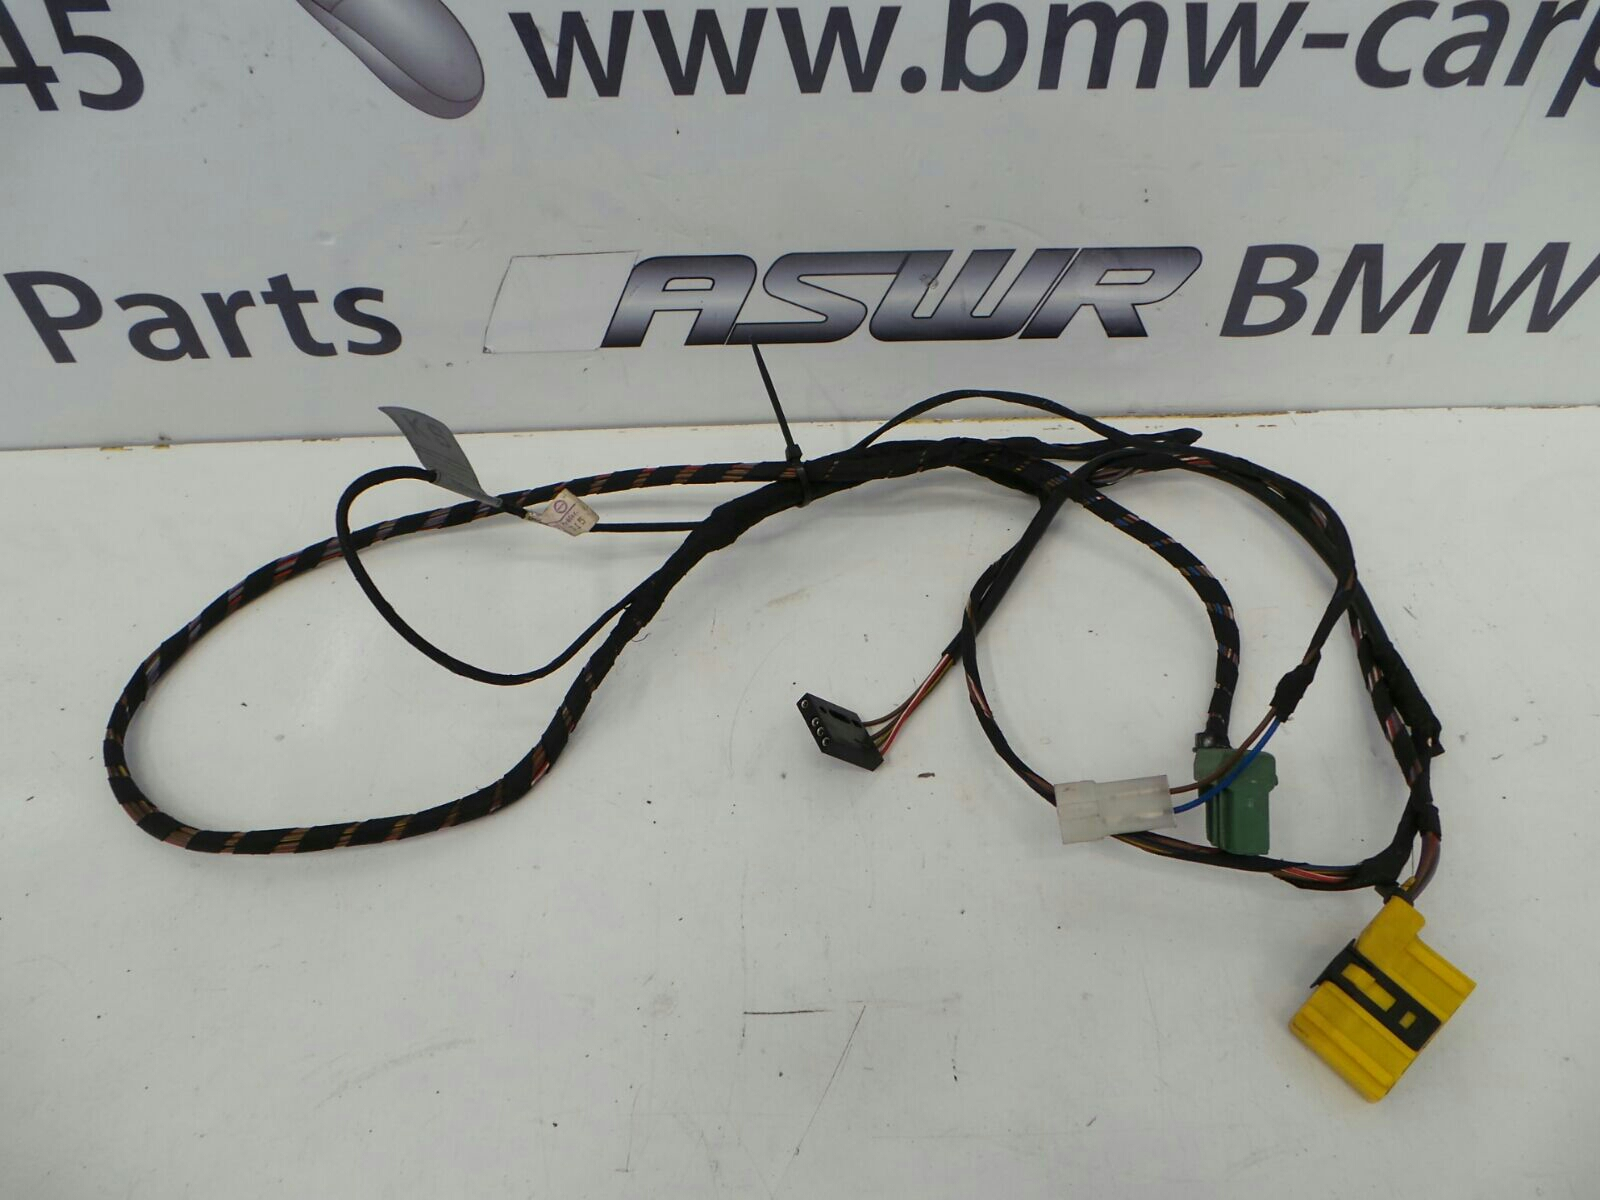 Bmw E30 Wiring Loom Guide And Troubleshooting Of Diagram Harness Images Gallery